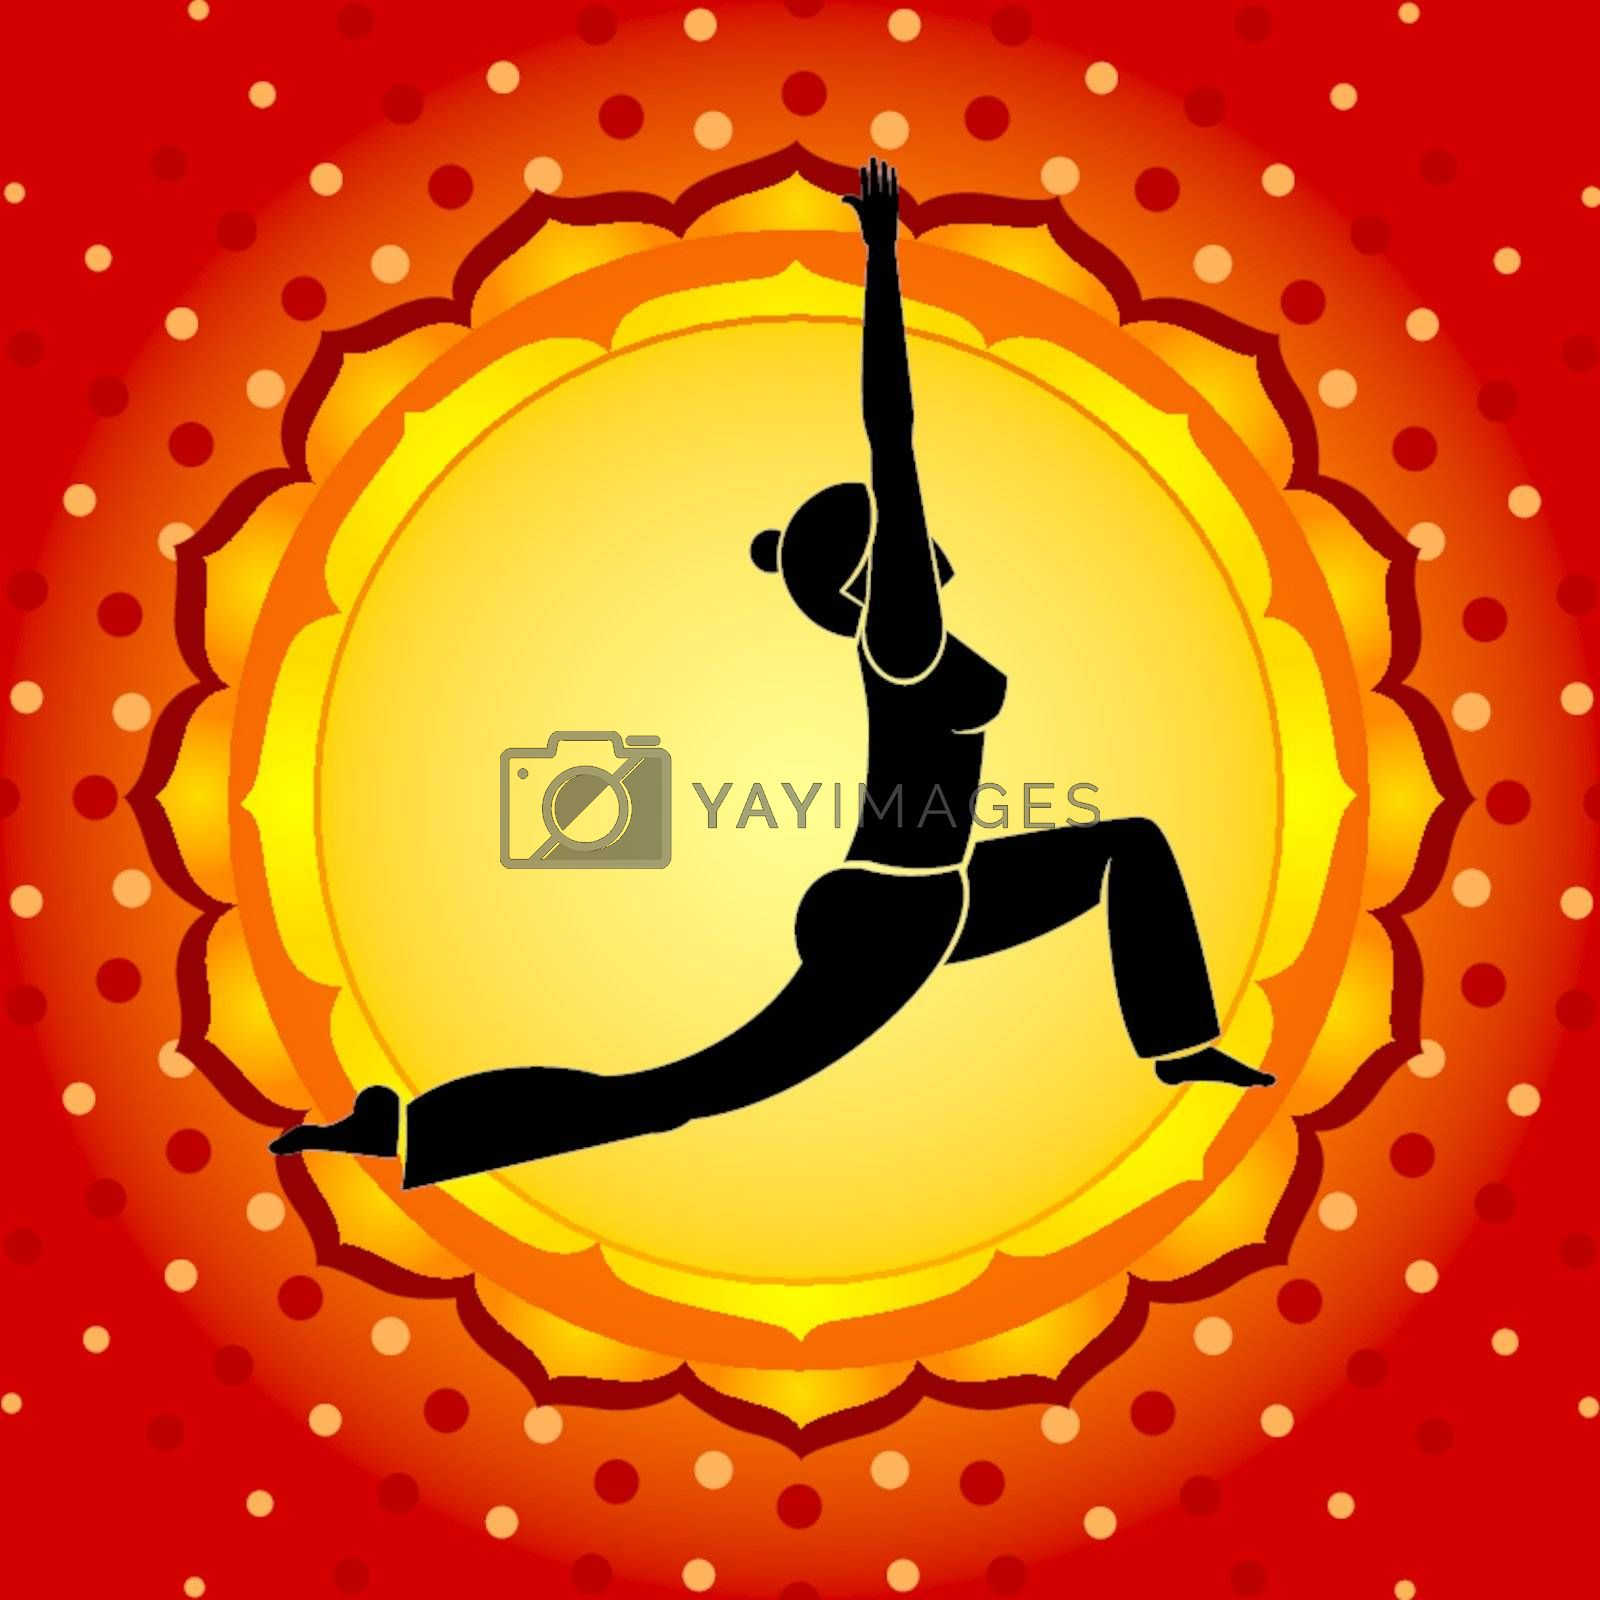 Woman standing in yoga pose against red background